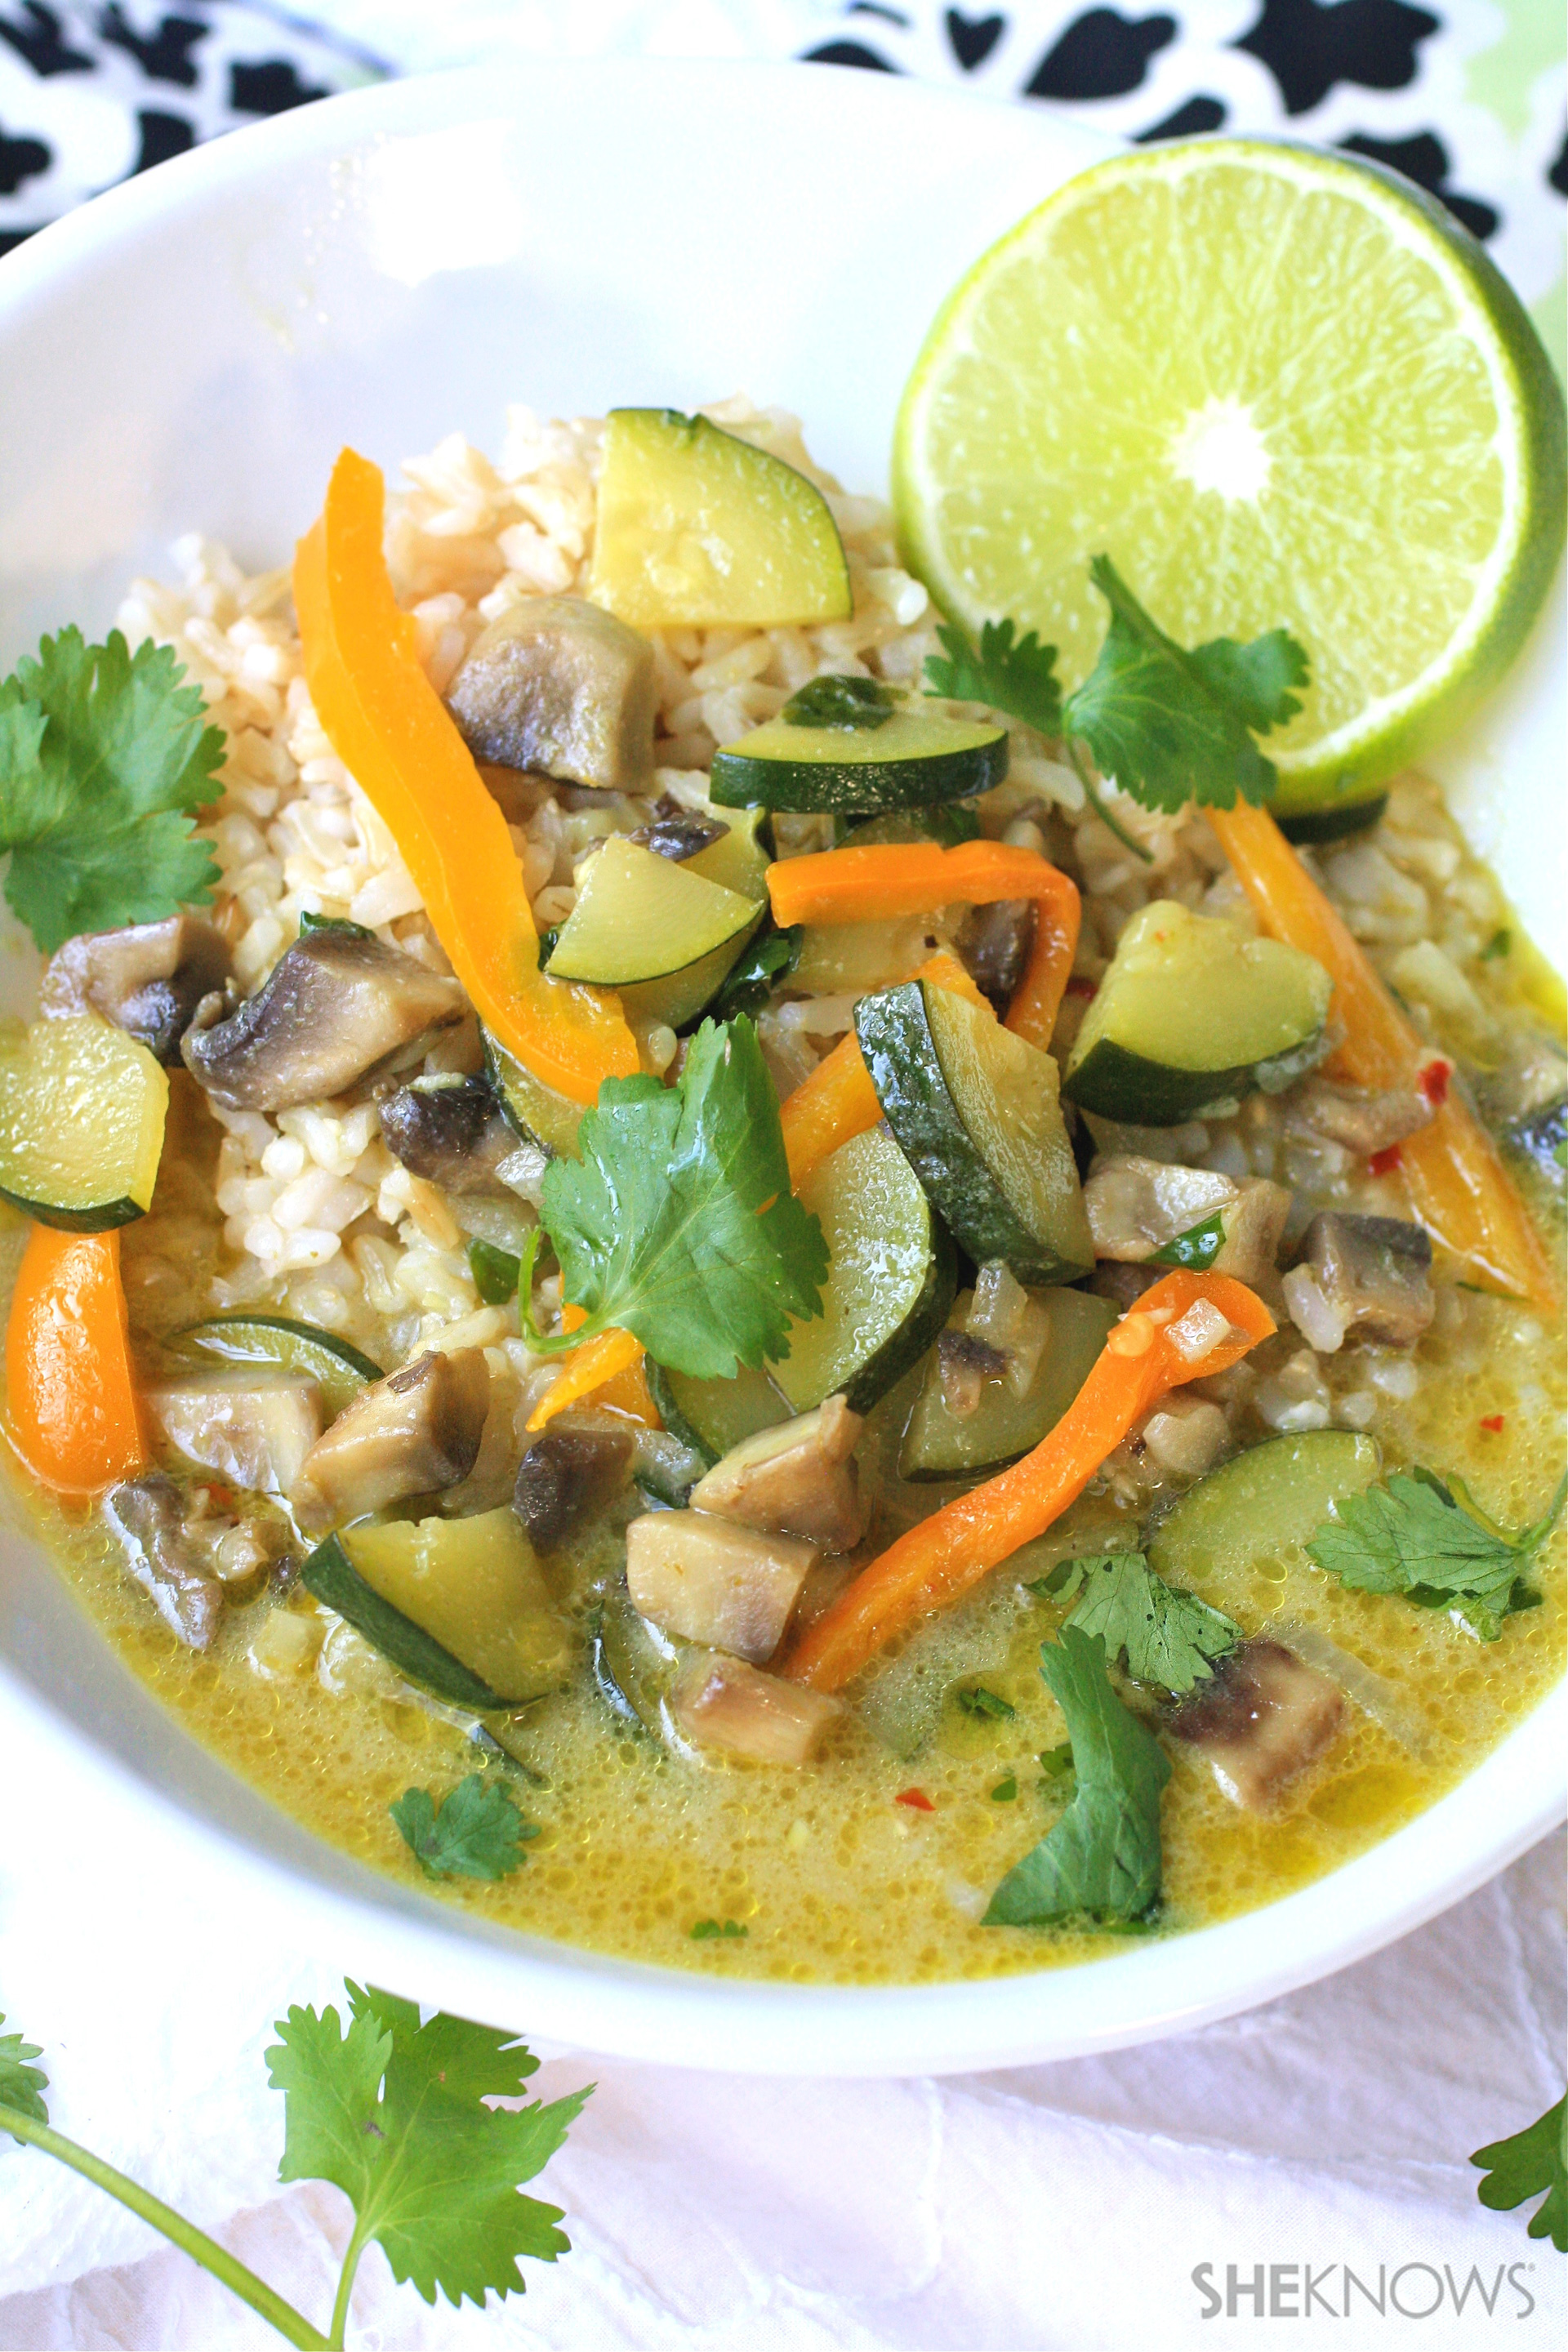 Green Thai curry with zucchini and mushrooms